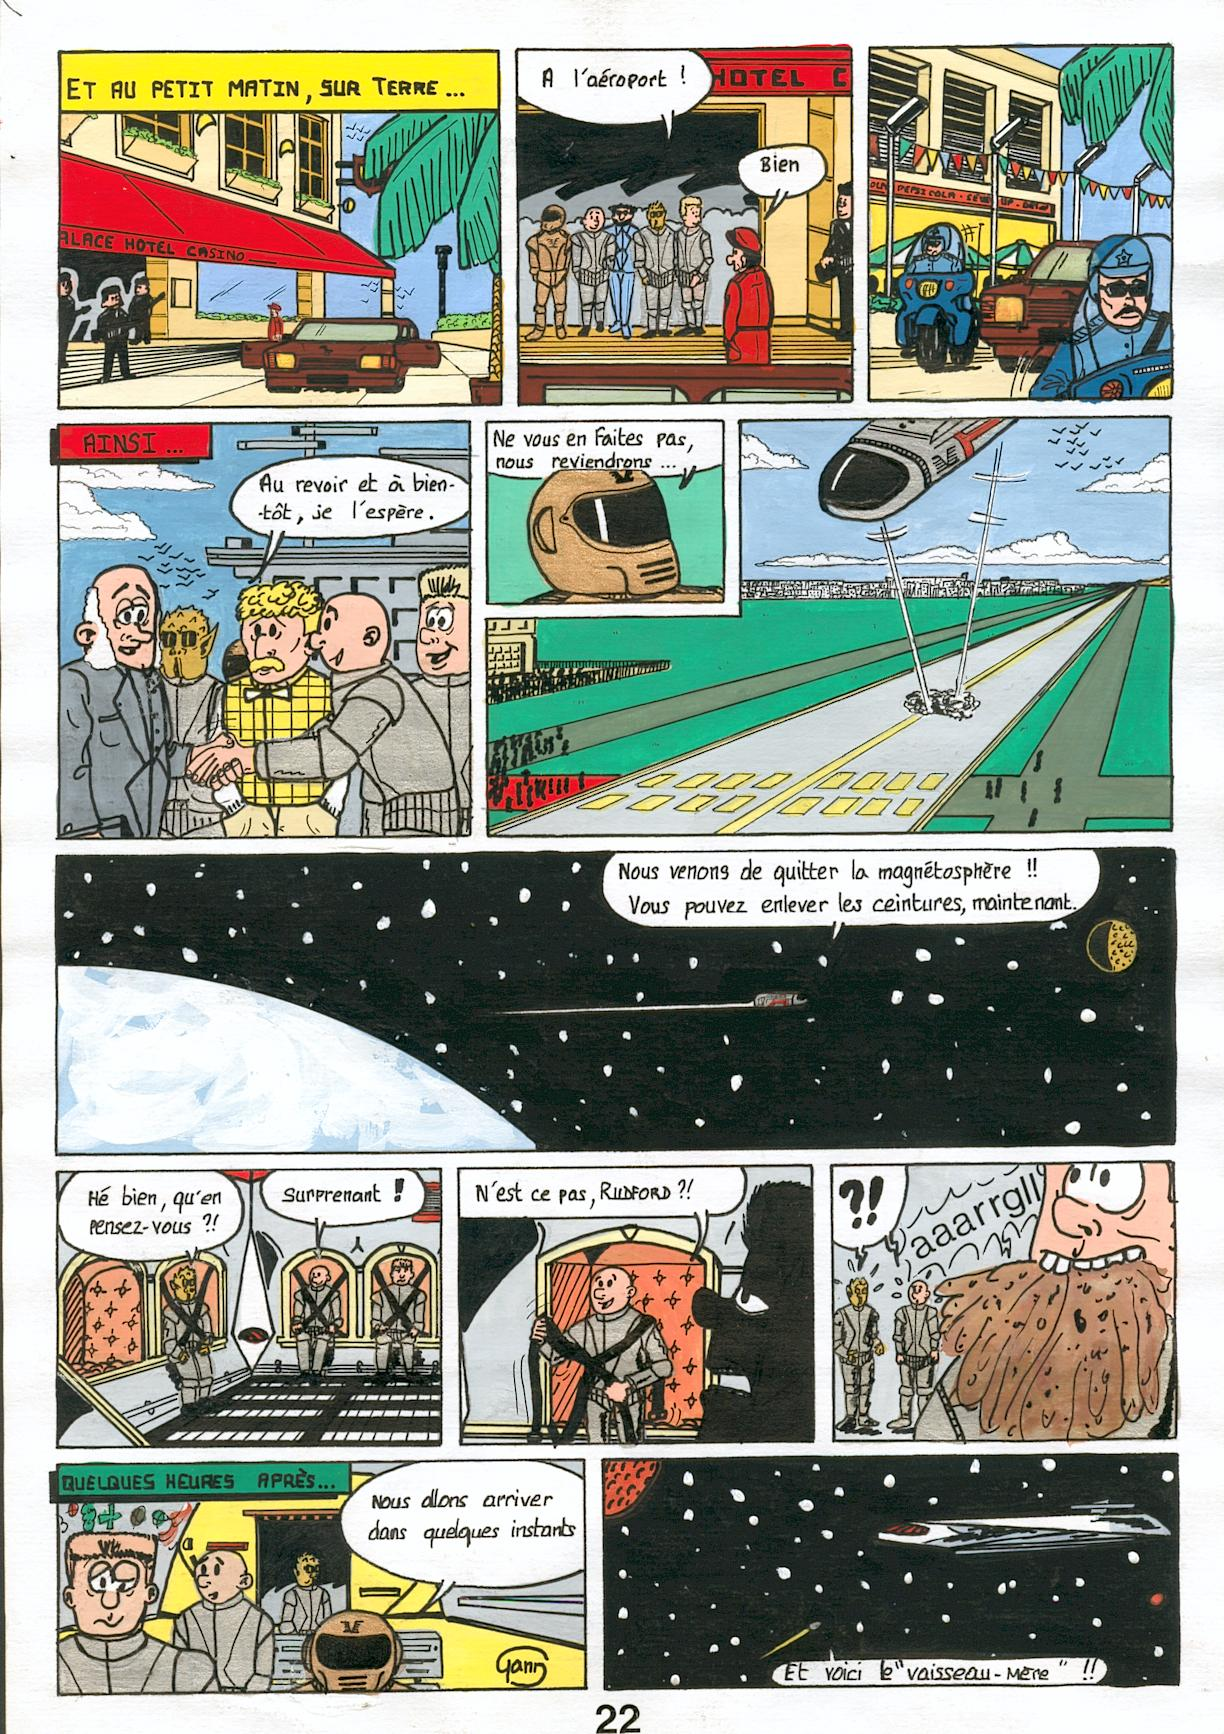 BD 8 page 22